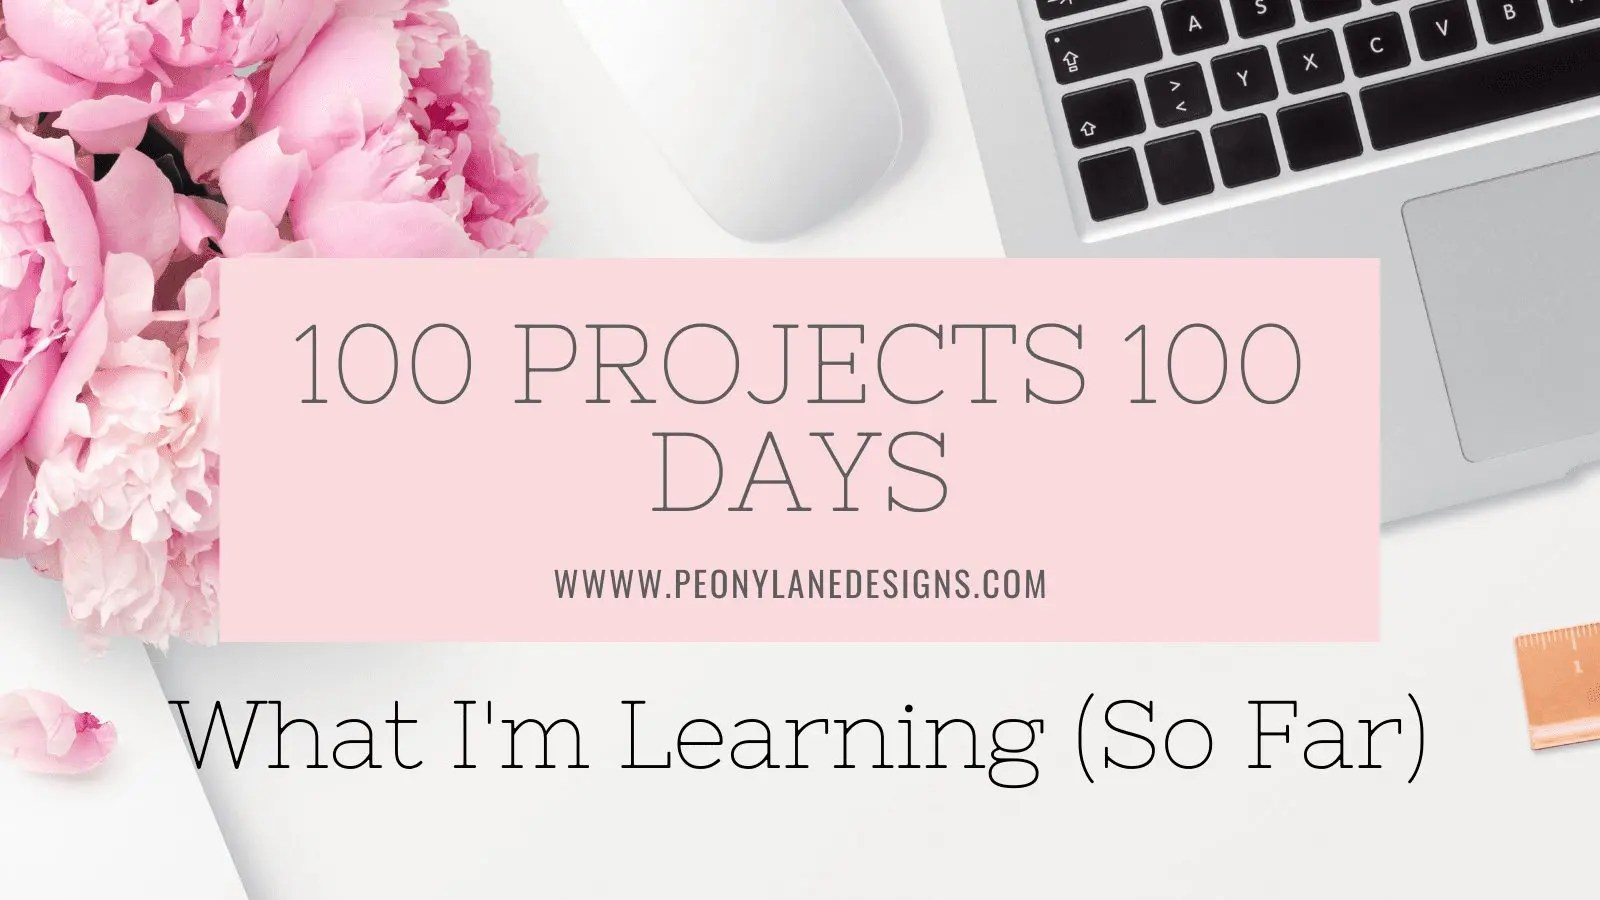 100 Projects 100 Days Challenge What I'm Learning (so far)